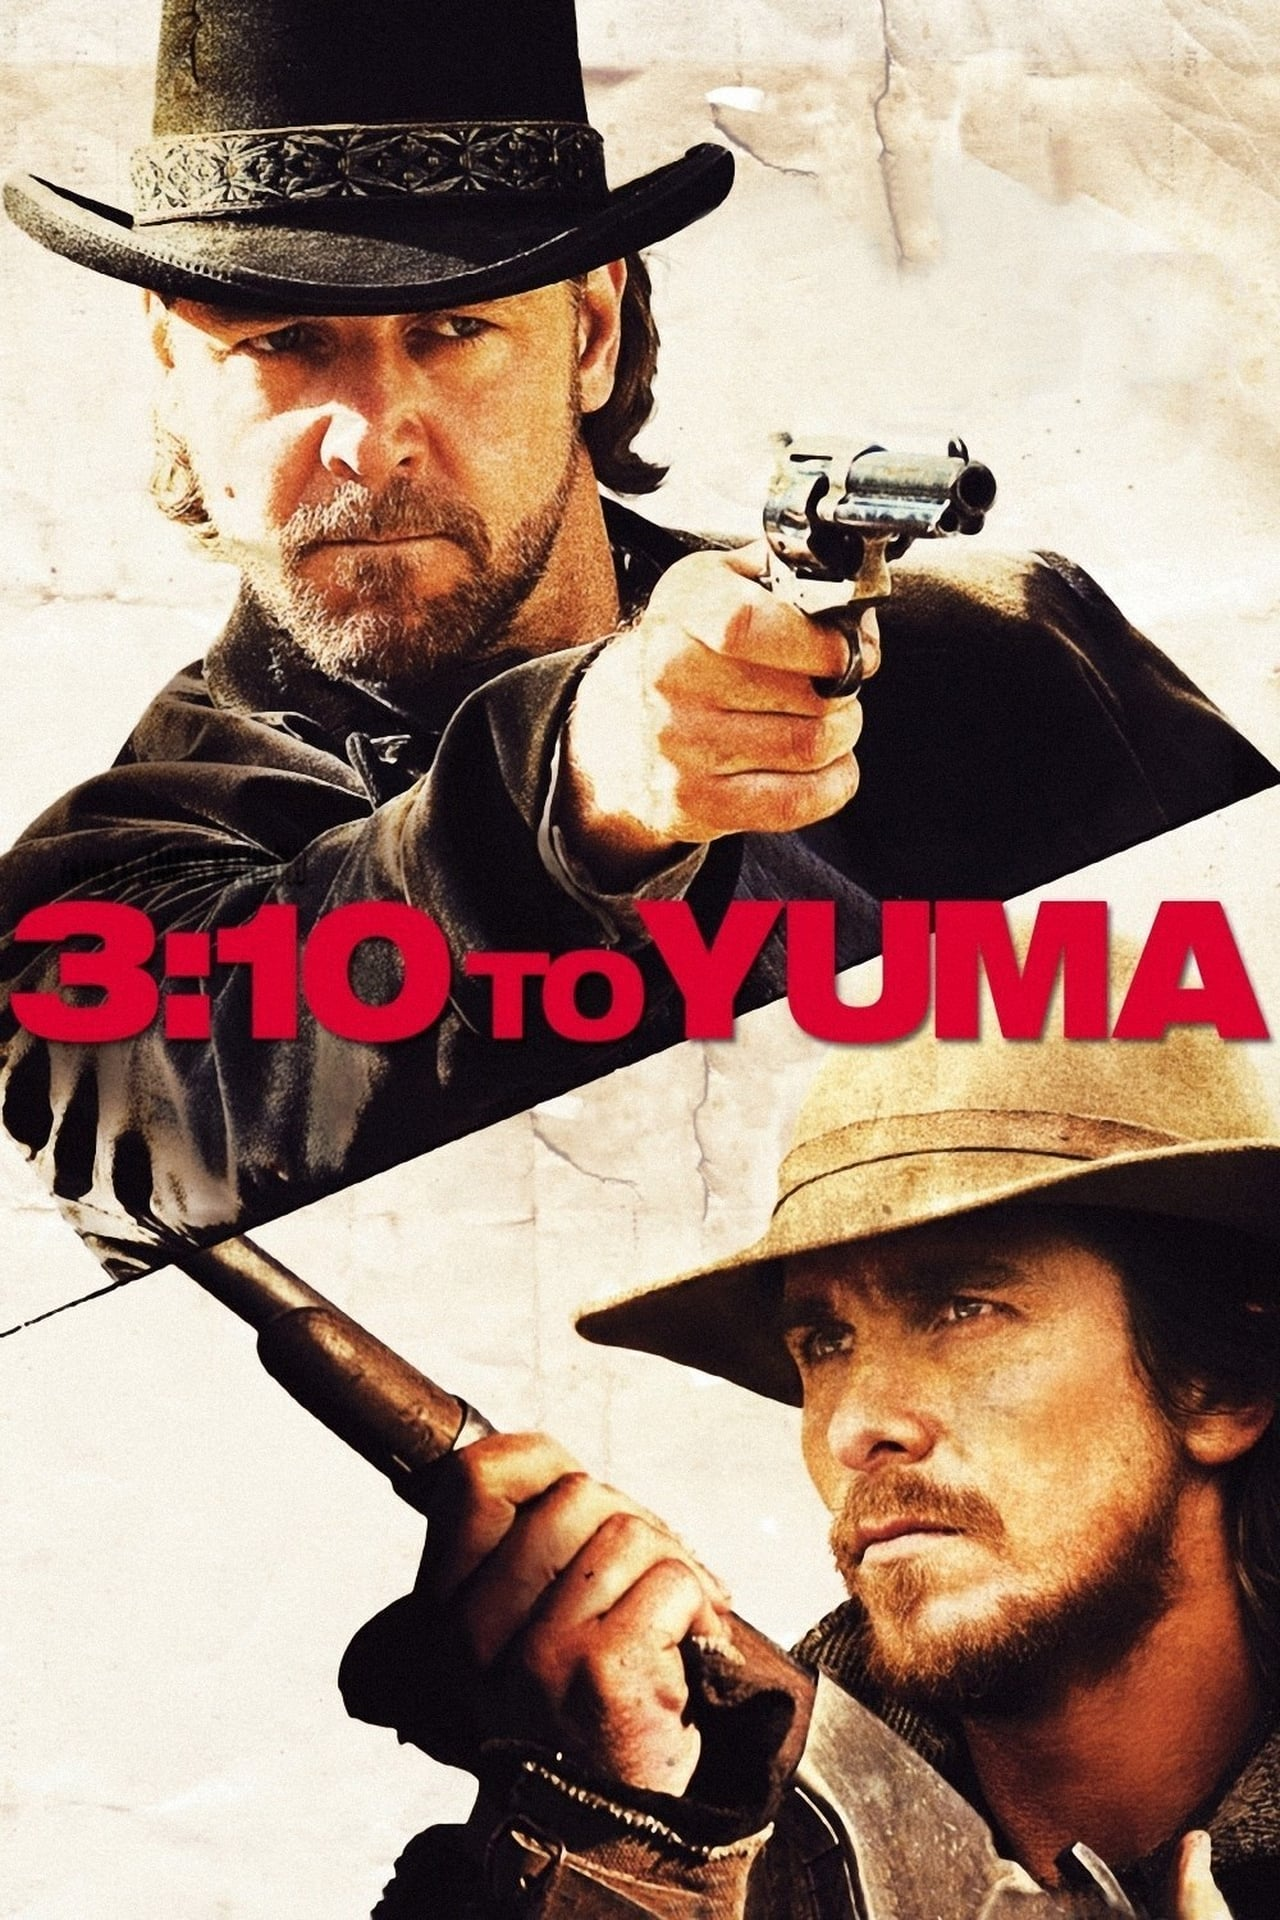 3:10 to Yuma kapak